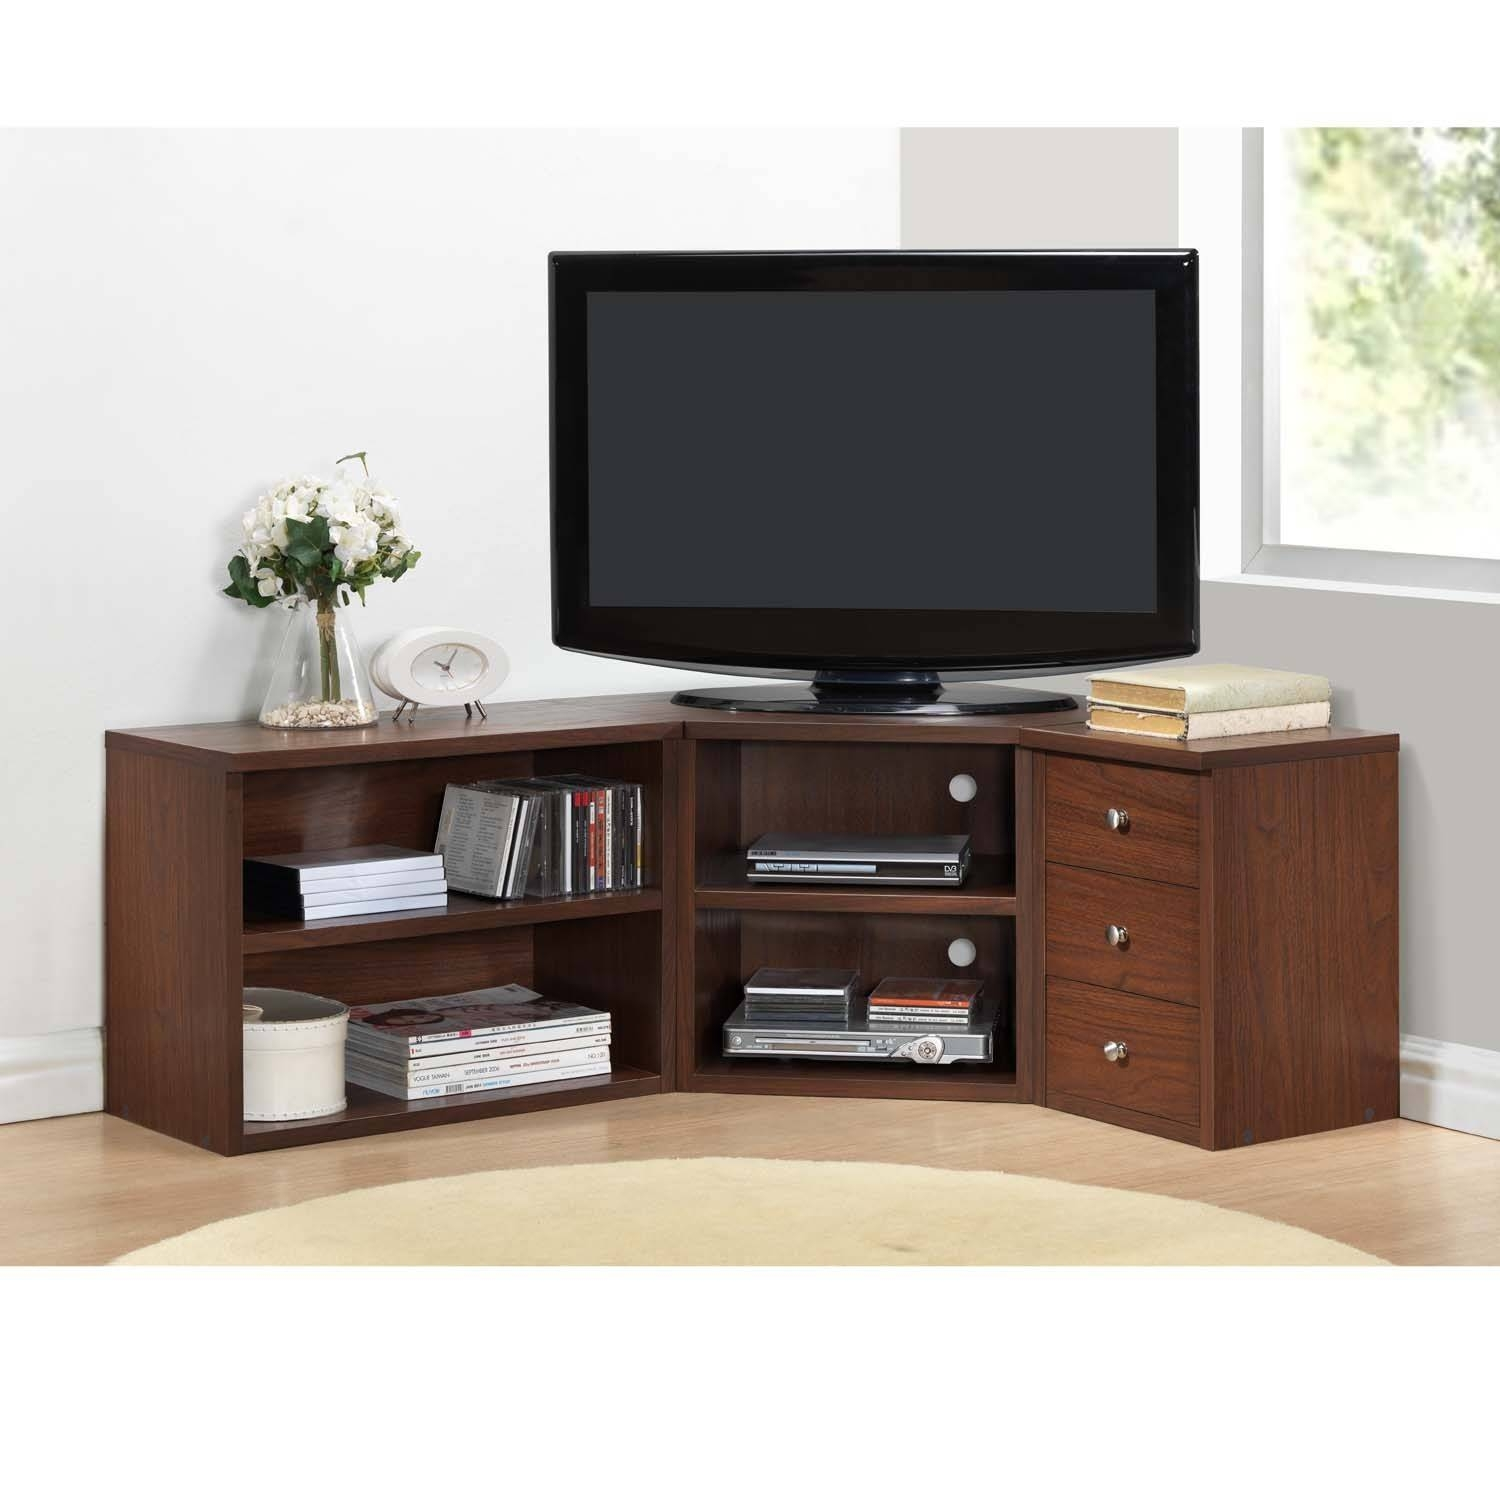 Lacquered Oak Wood Corner Tv Stand With Drawers Cabinet Of Stylish with Corner Tv Stands With Drawers (Image 7 of 15)